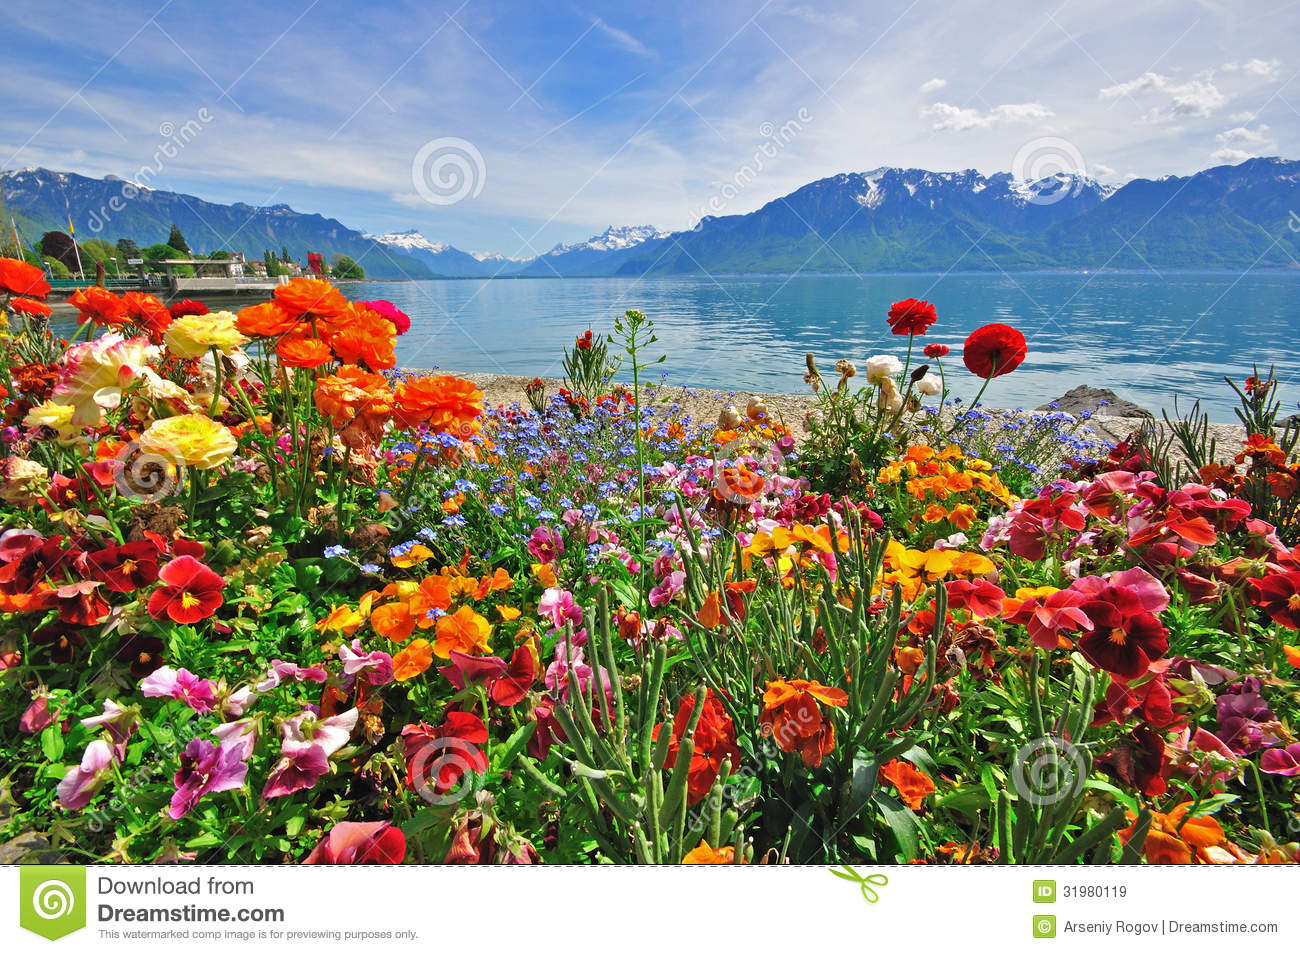 Flowers in swiss Alps stock image Image of scenery